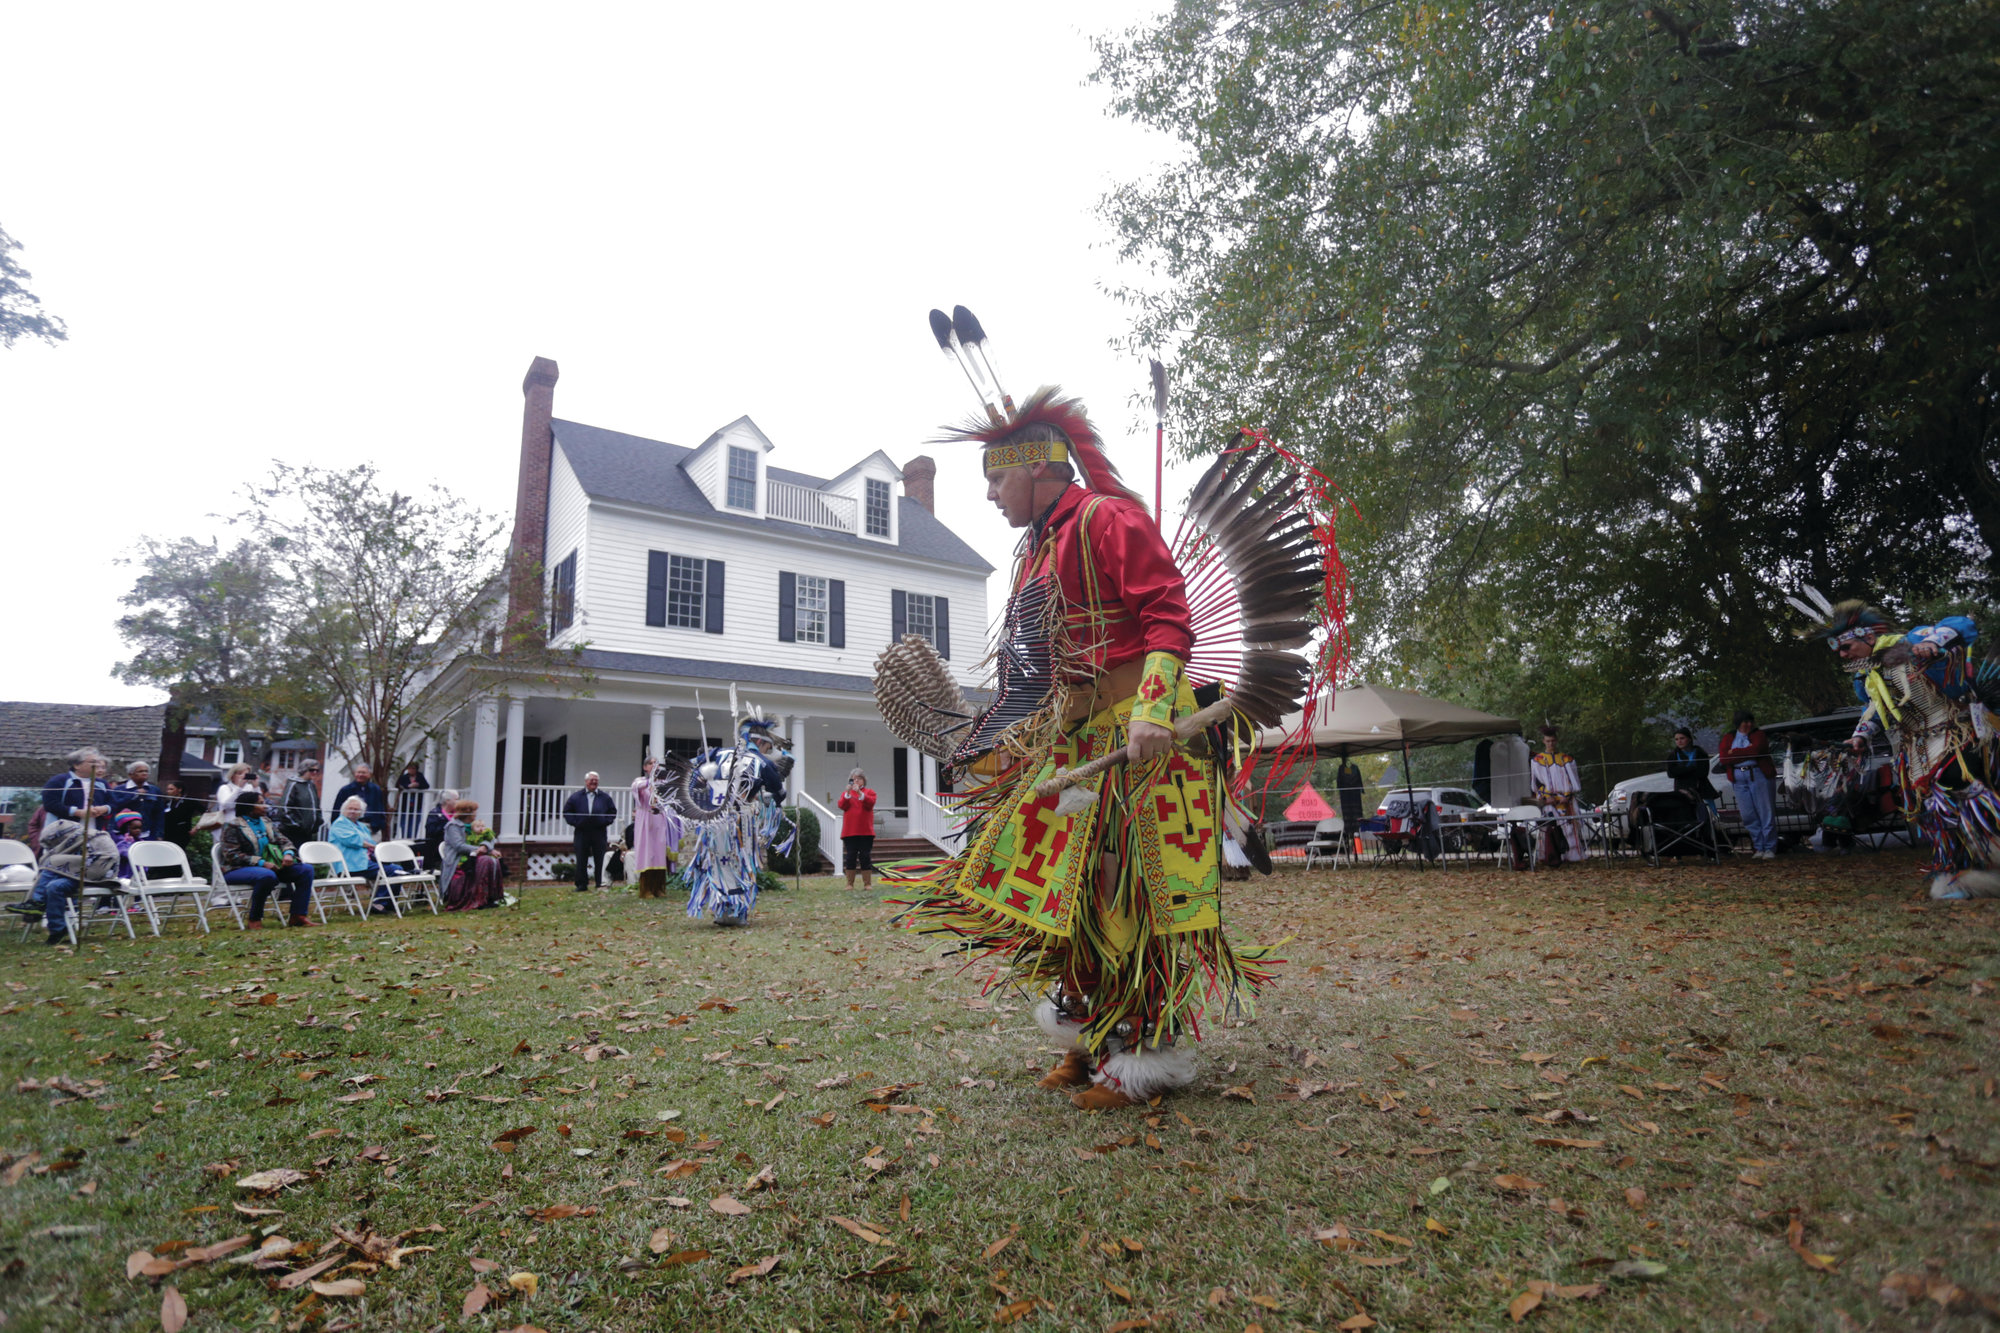 Native Americans dance during a past Sumter Tribe of Cheraw Indians event at the Sumter County Museum.